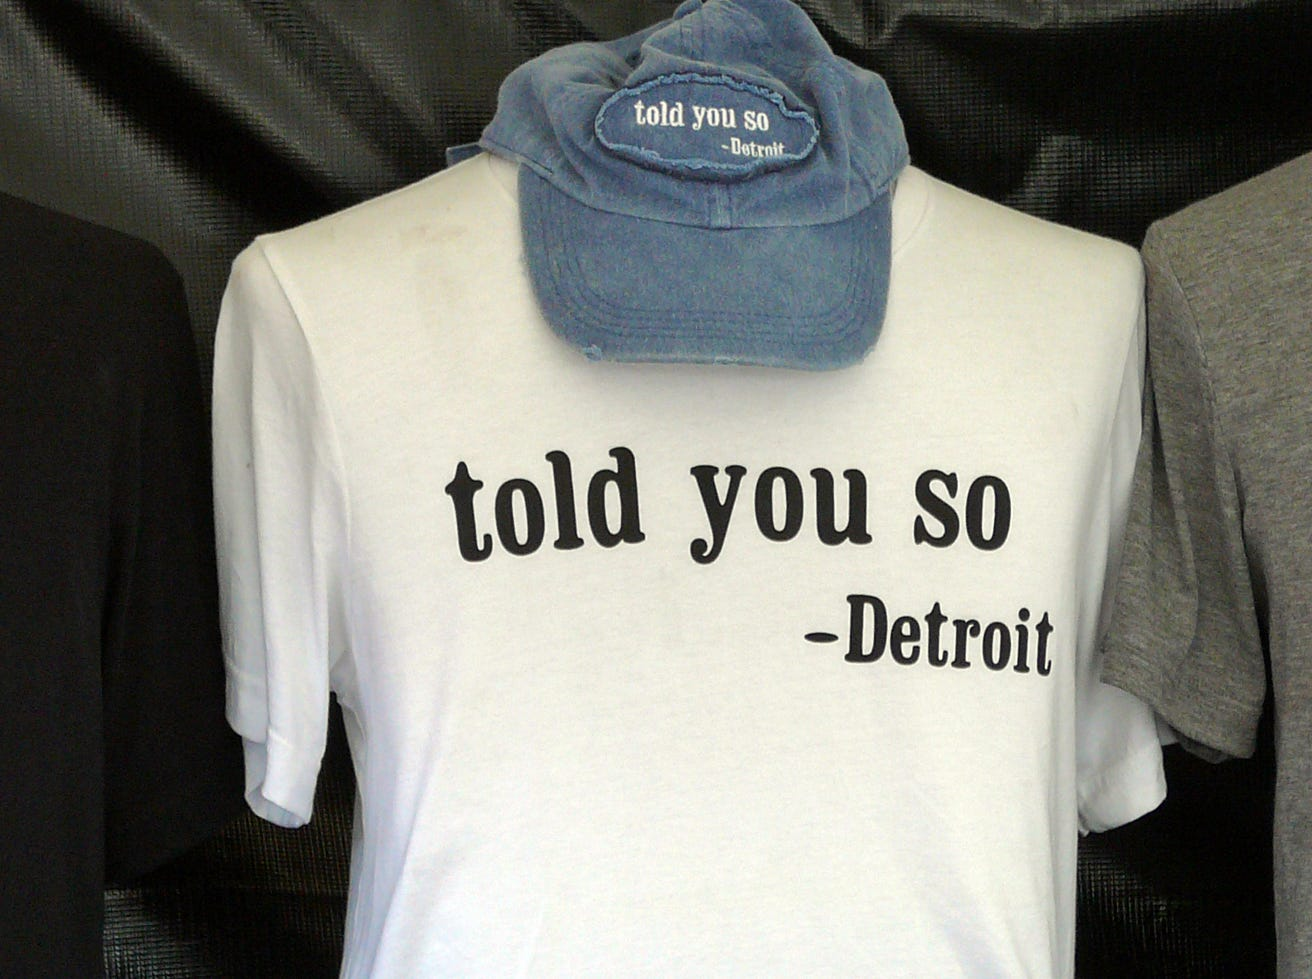 Clothing options for people bullish on Detroit's future.